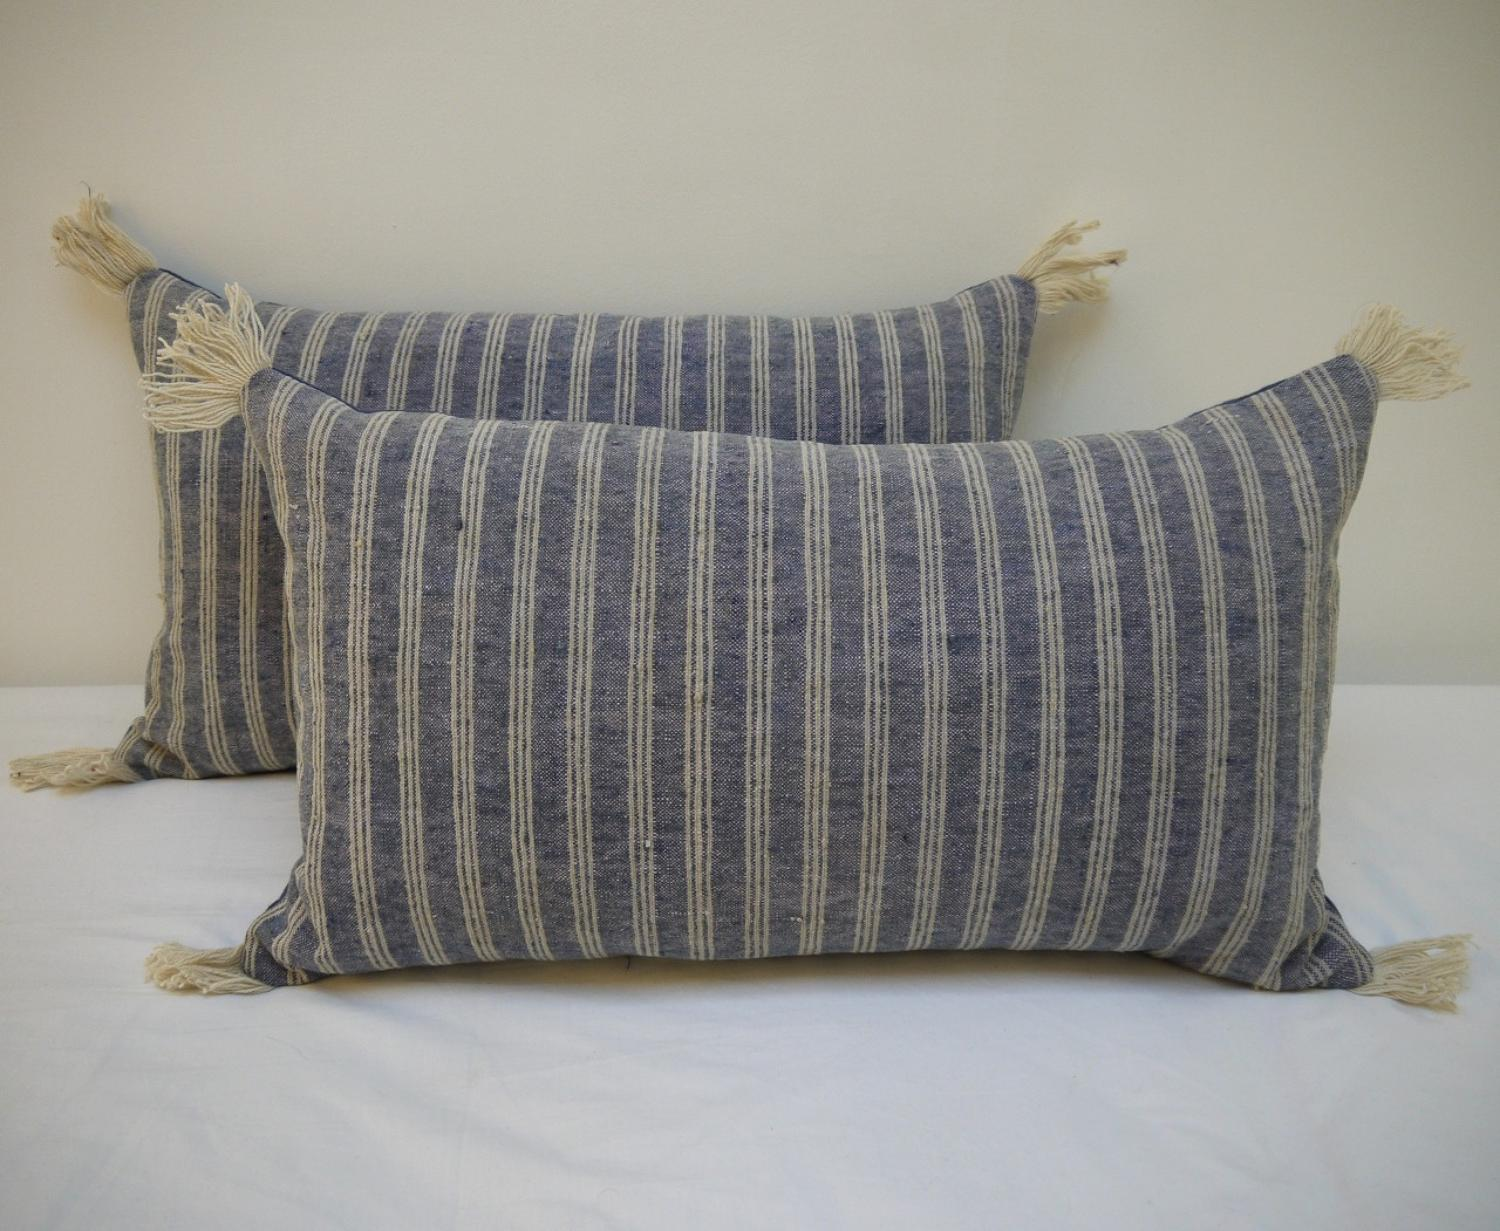 Pair of 19th century French Striped Cushions